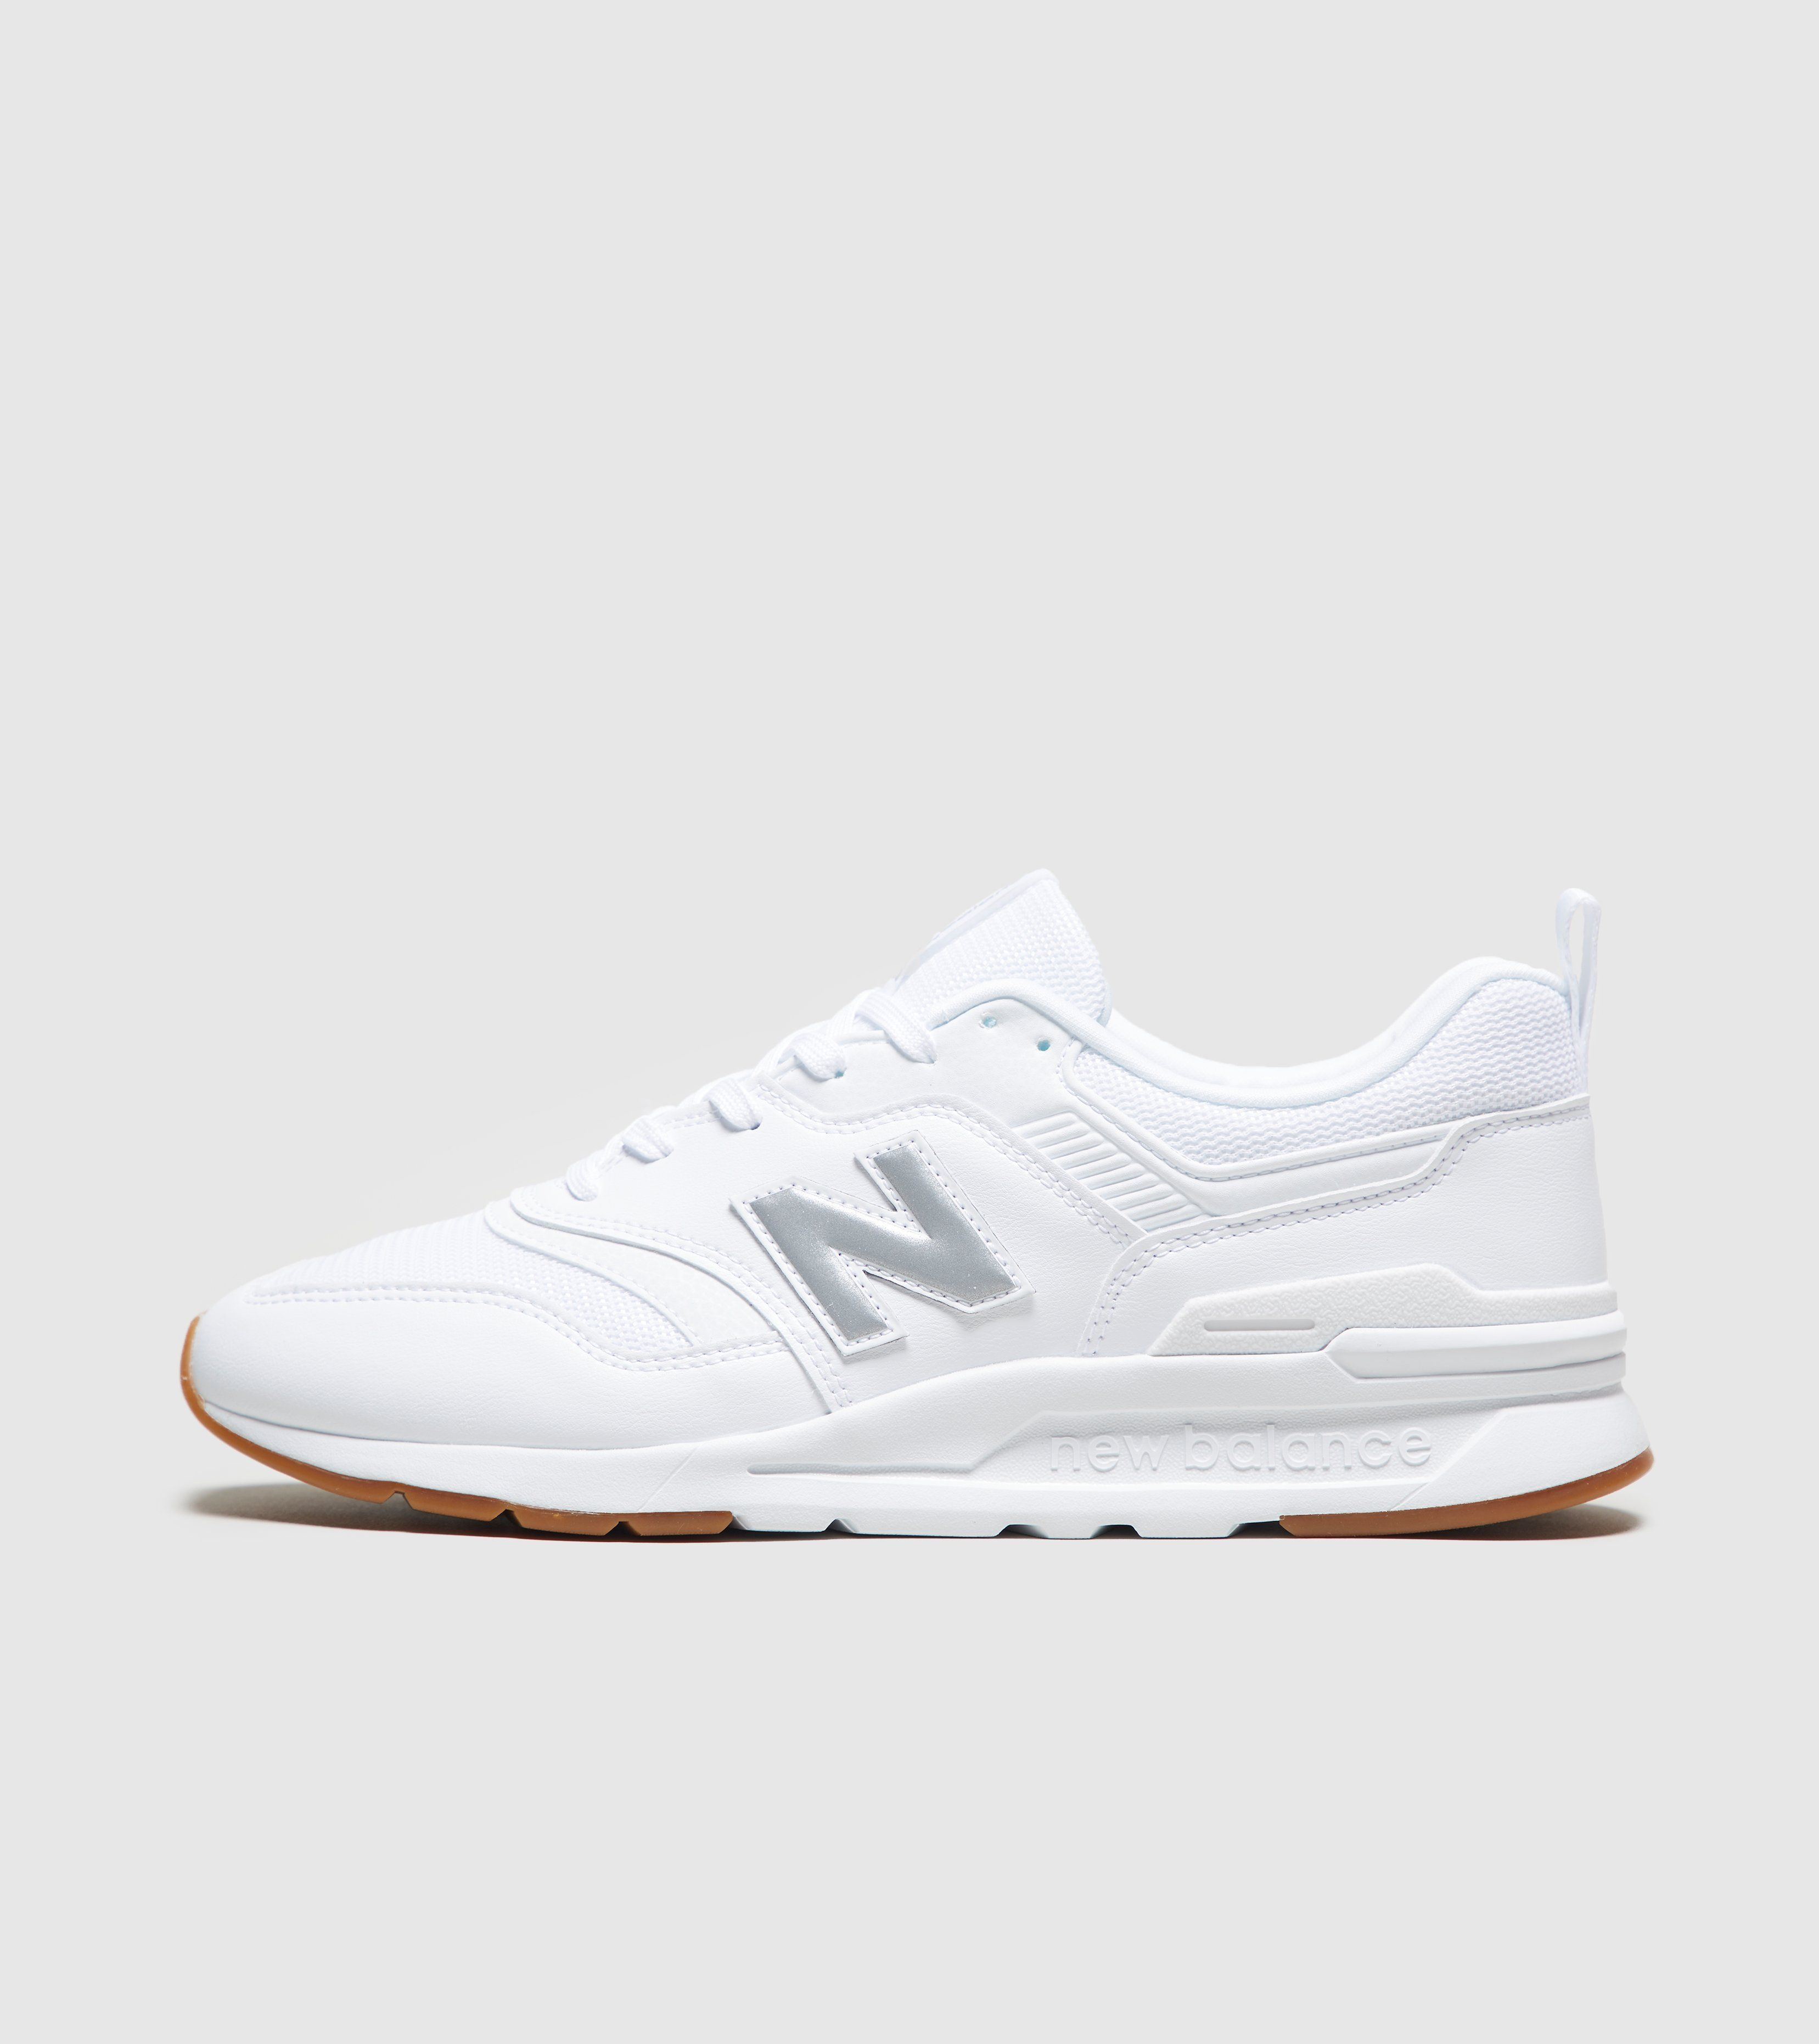 New Balance 997H Leather